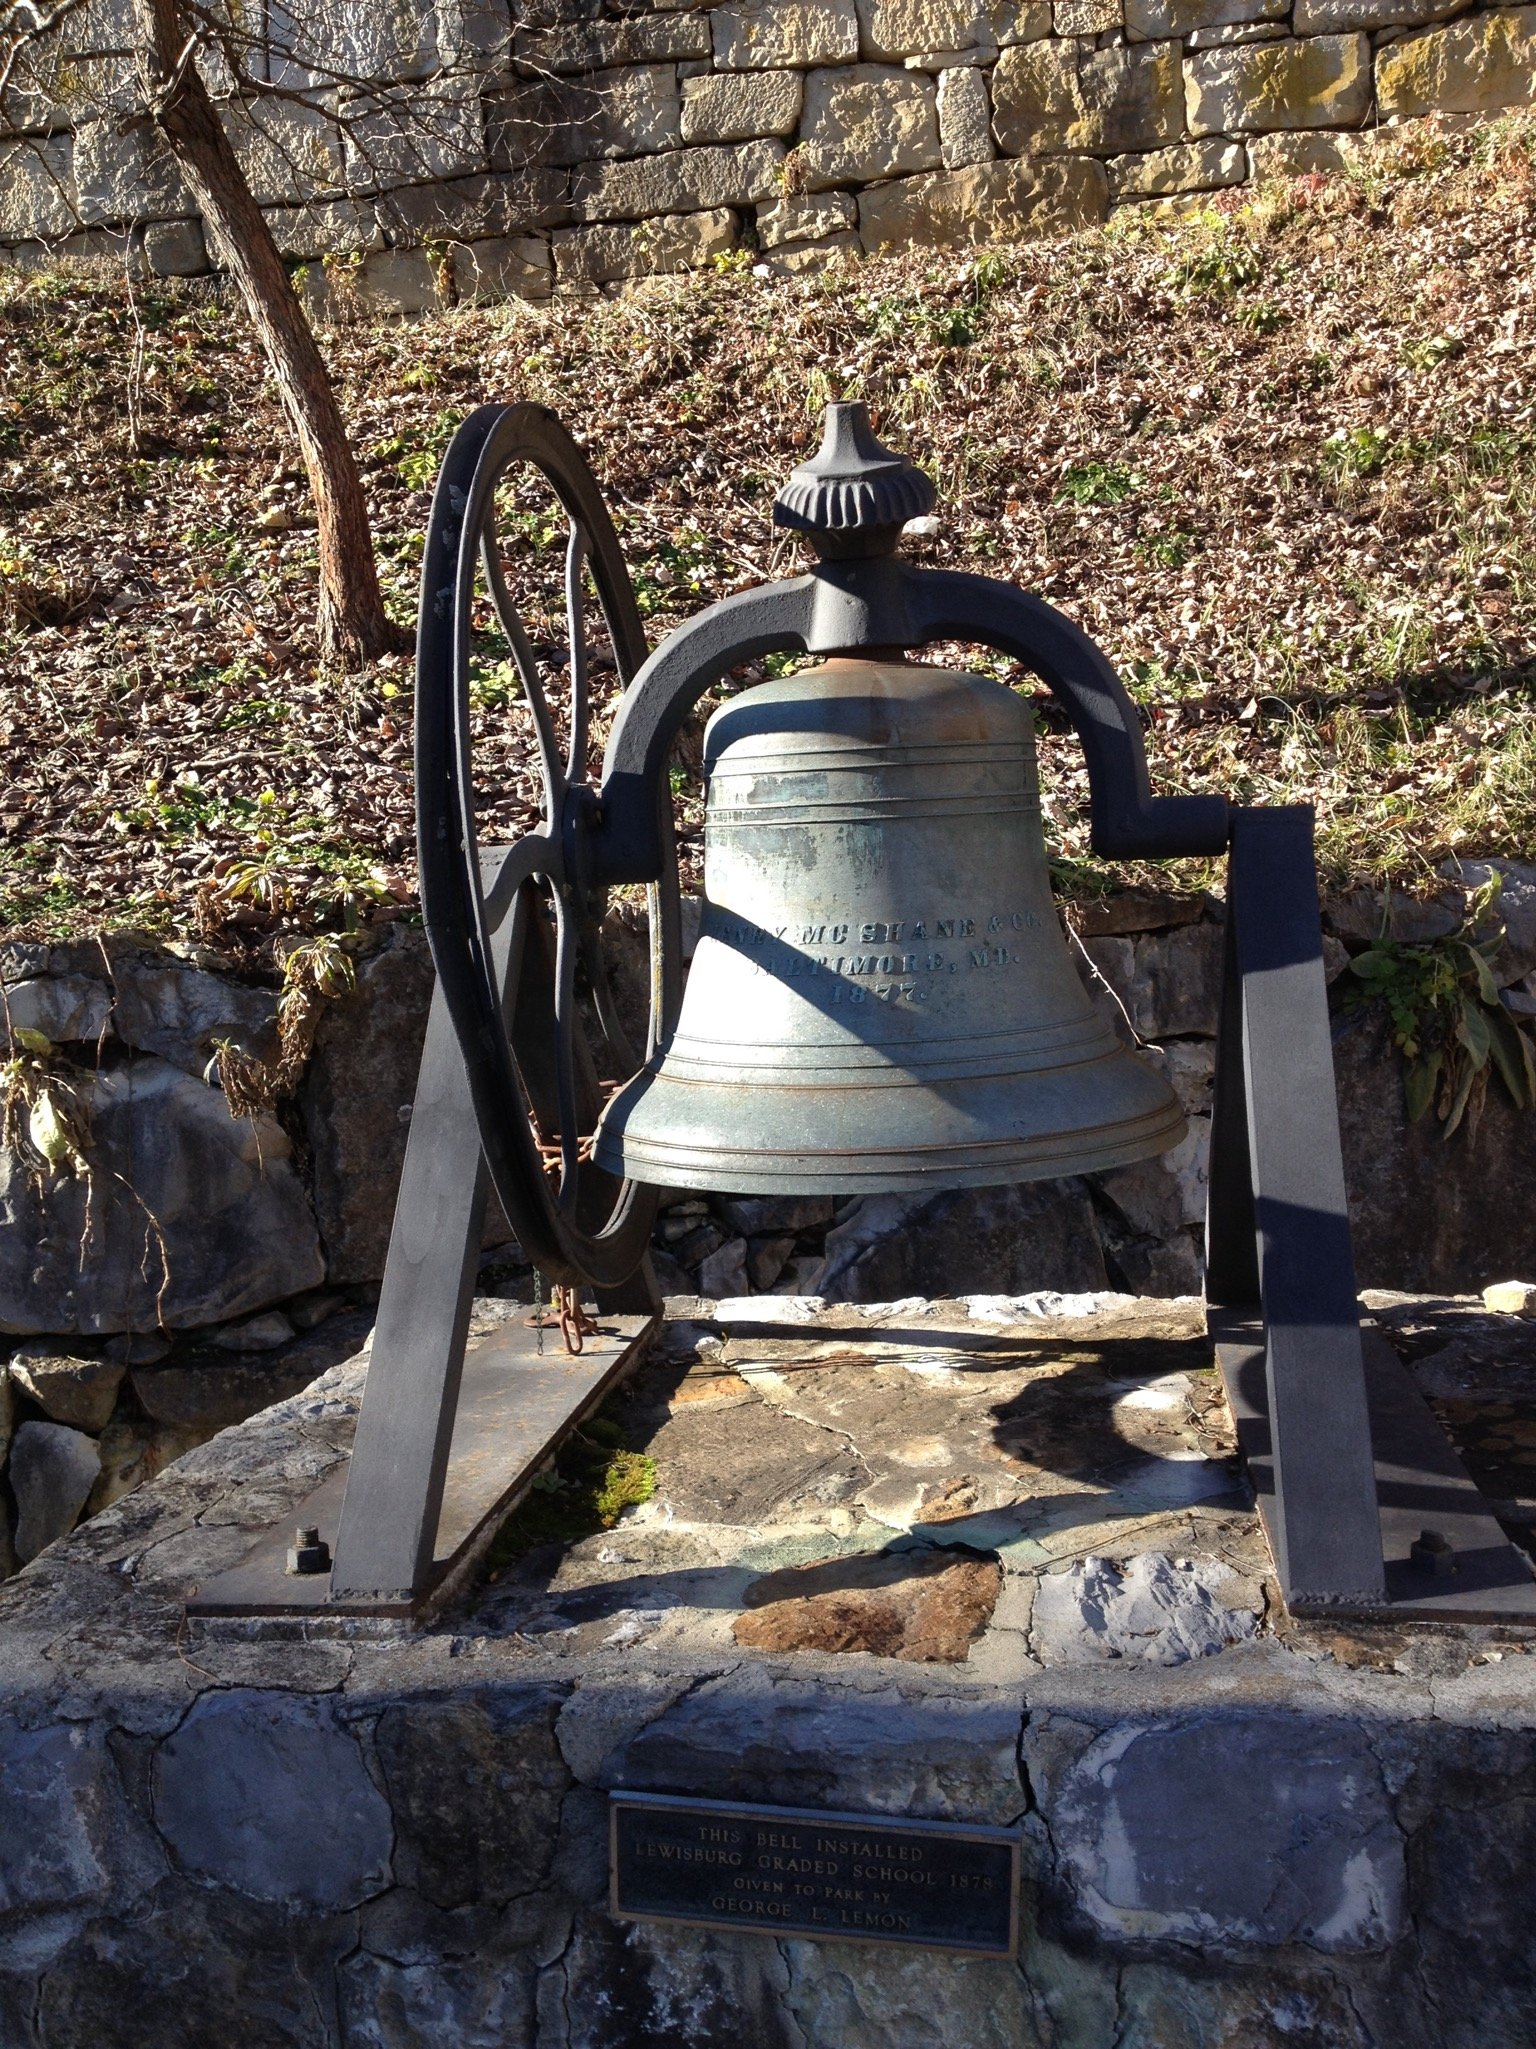 1878 bell from the Lewisburg Graded School.